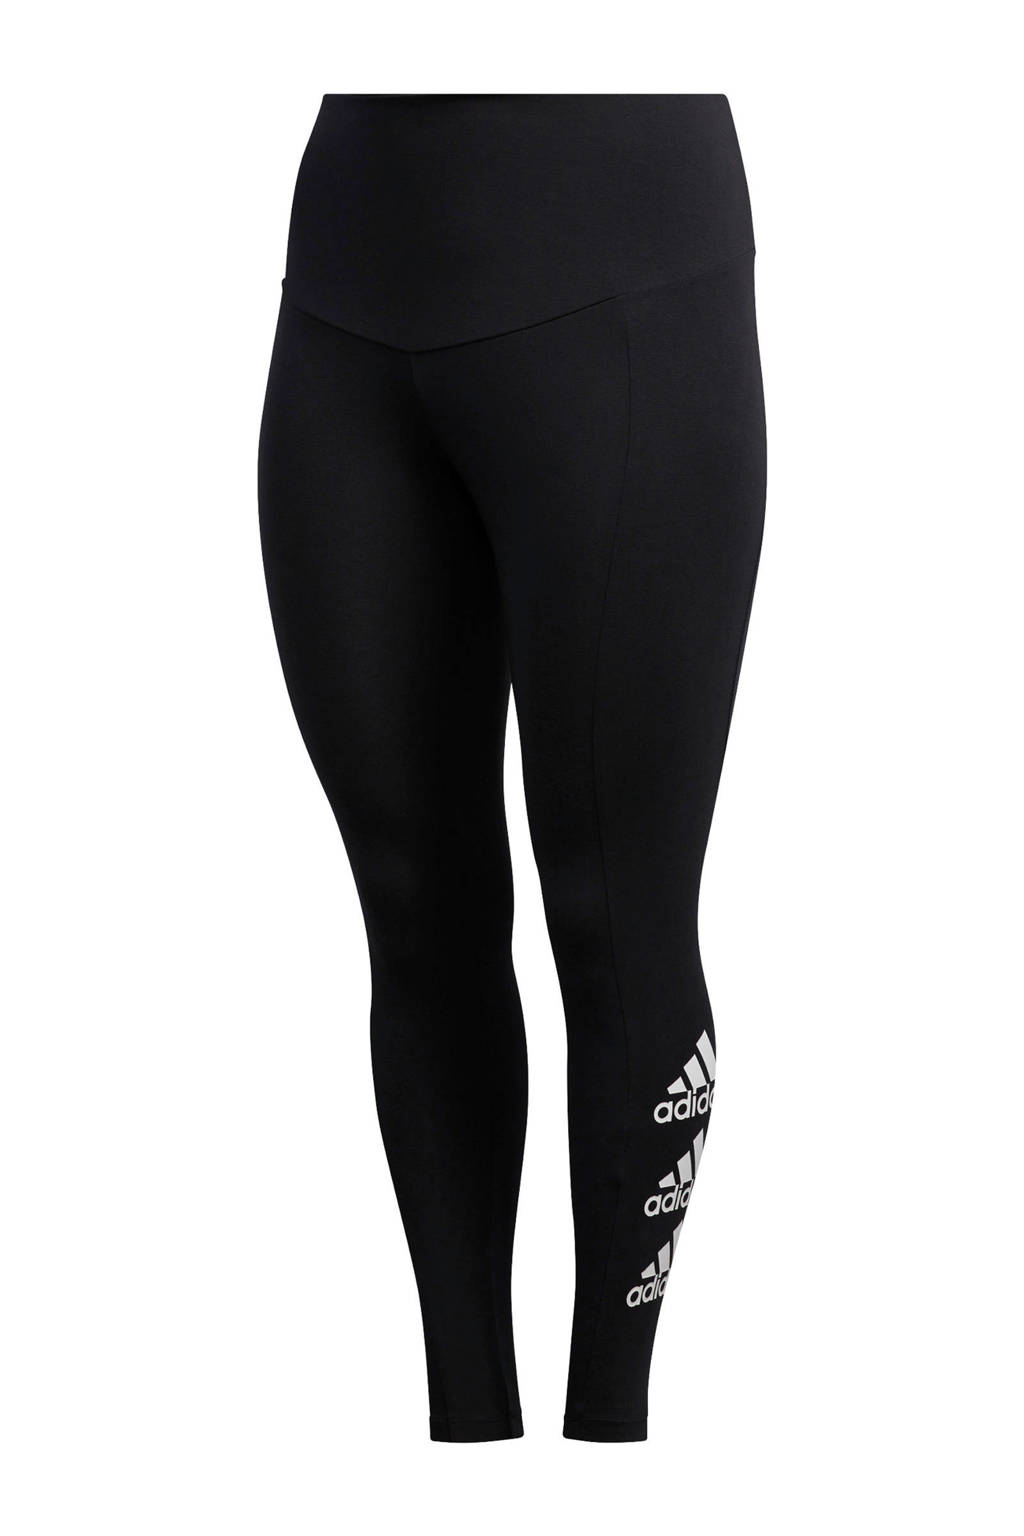 adidas Performance Plus Size sportbroek zwart/wit, Zwart/wit